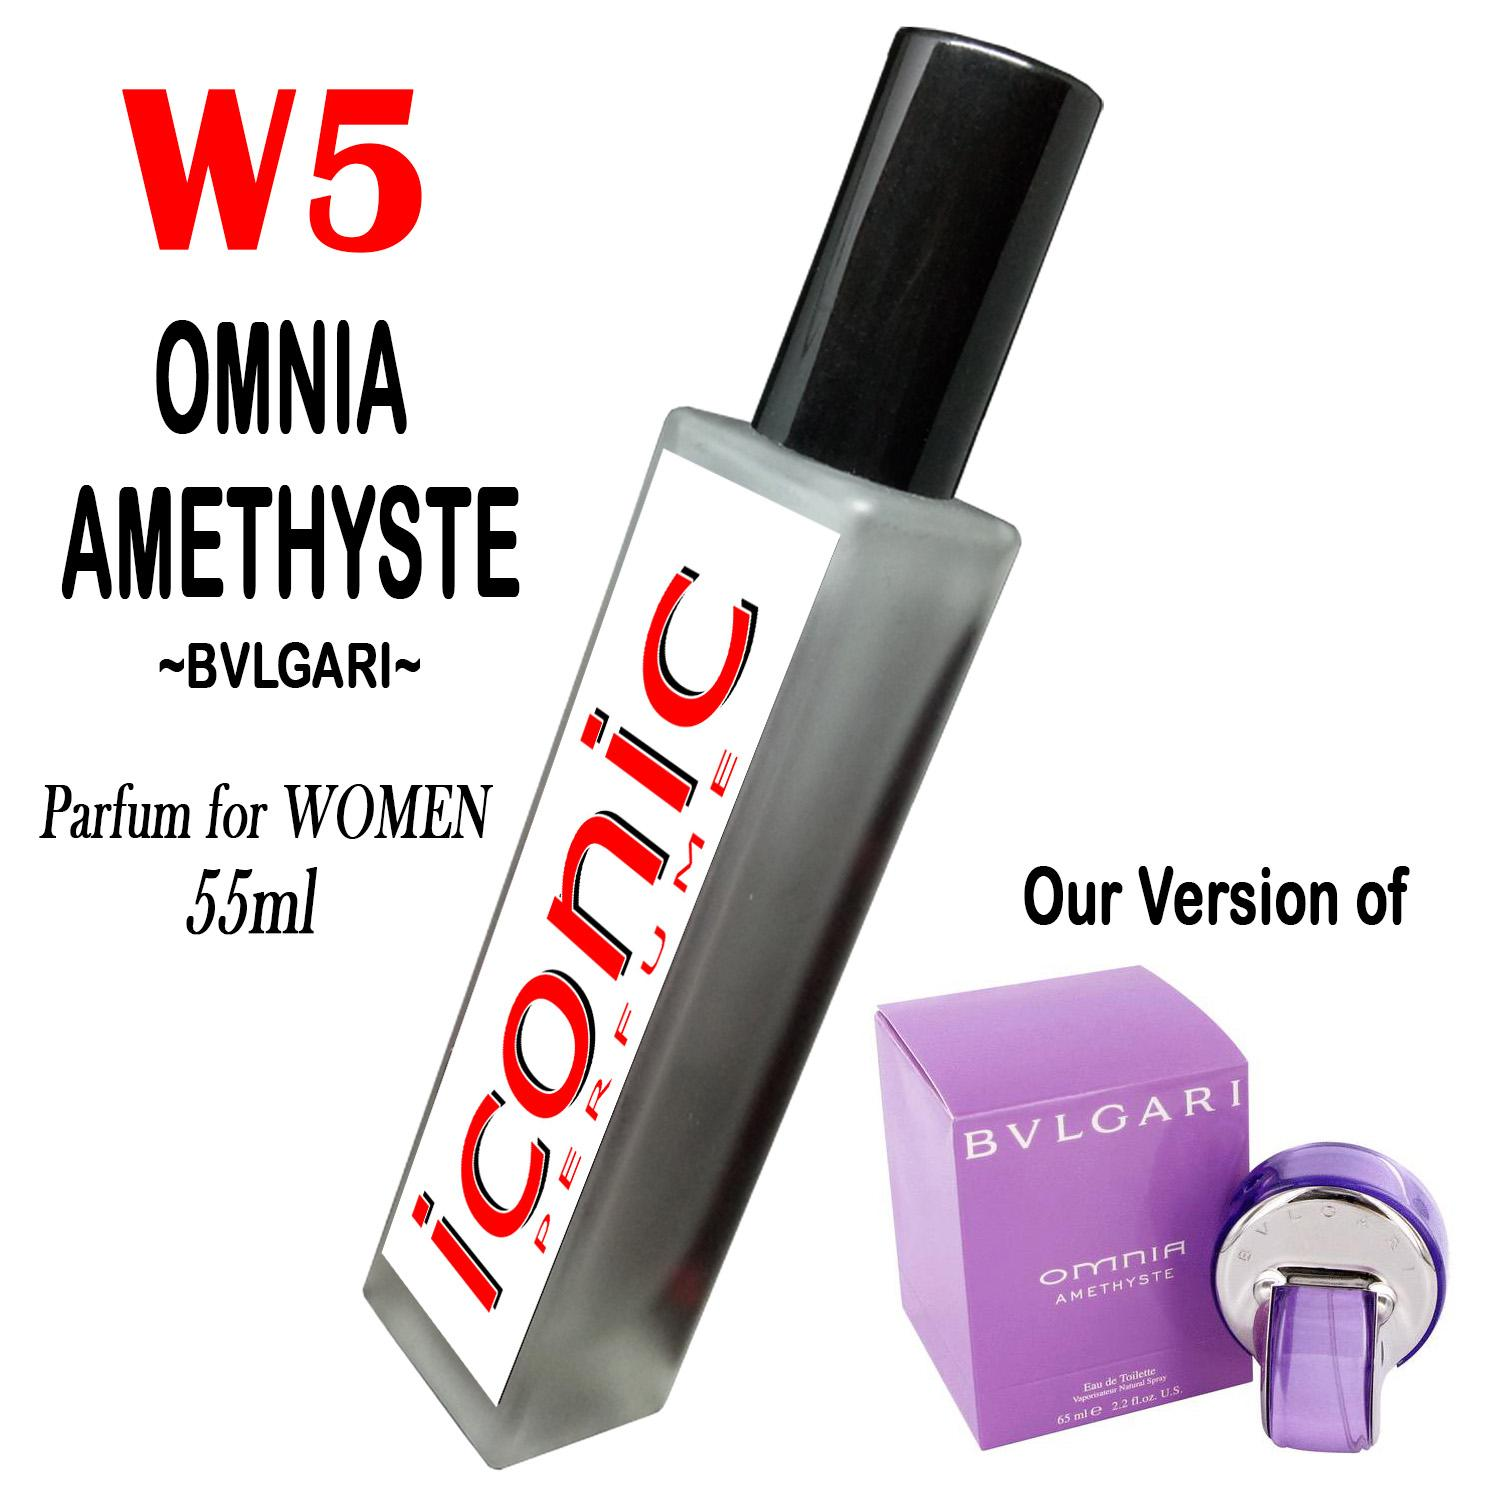 ICONIC W5 Omnia Amethyste by Bulgari - Inspired version 1pc 55ml